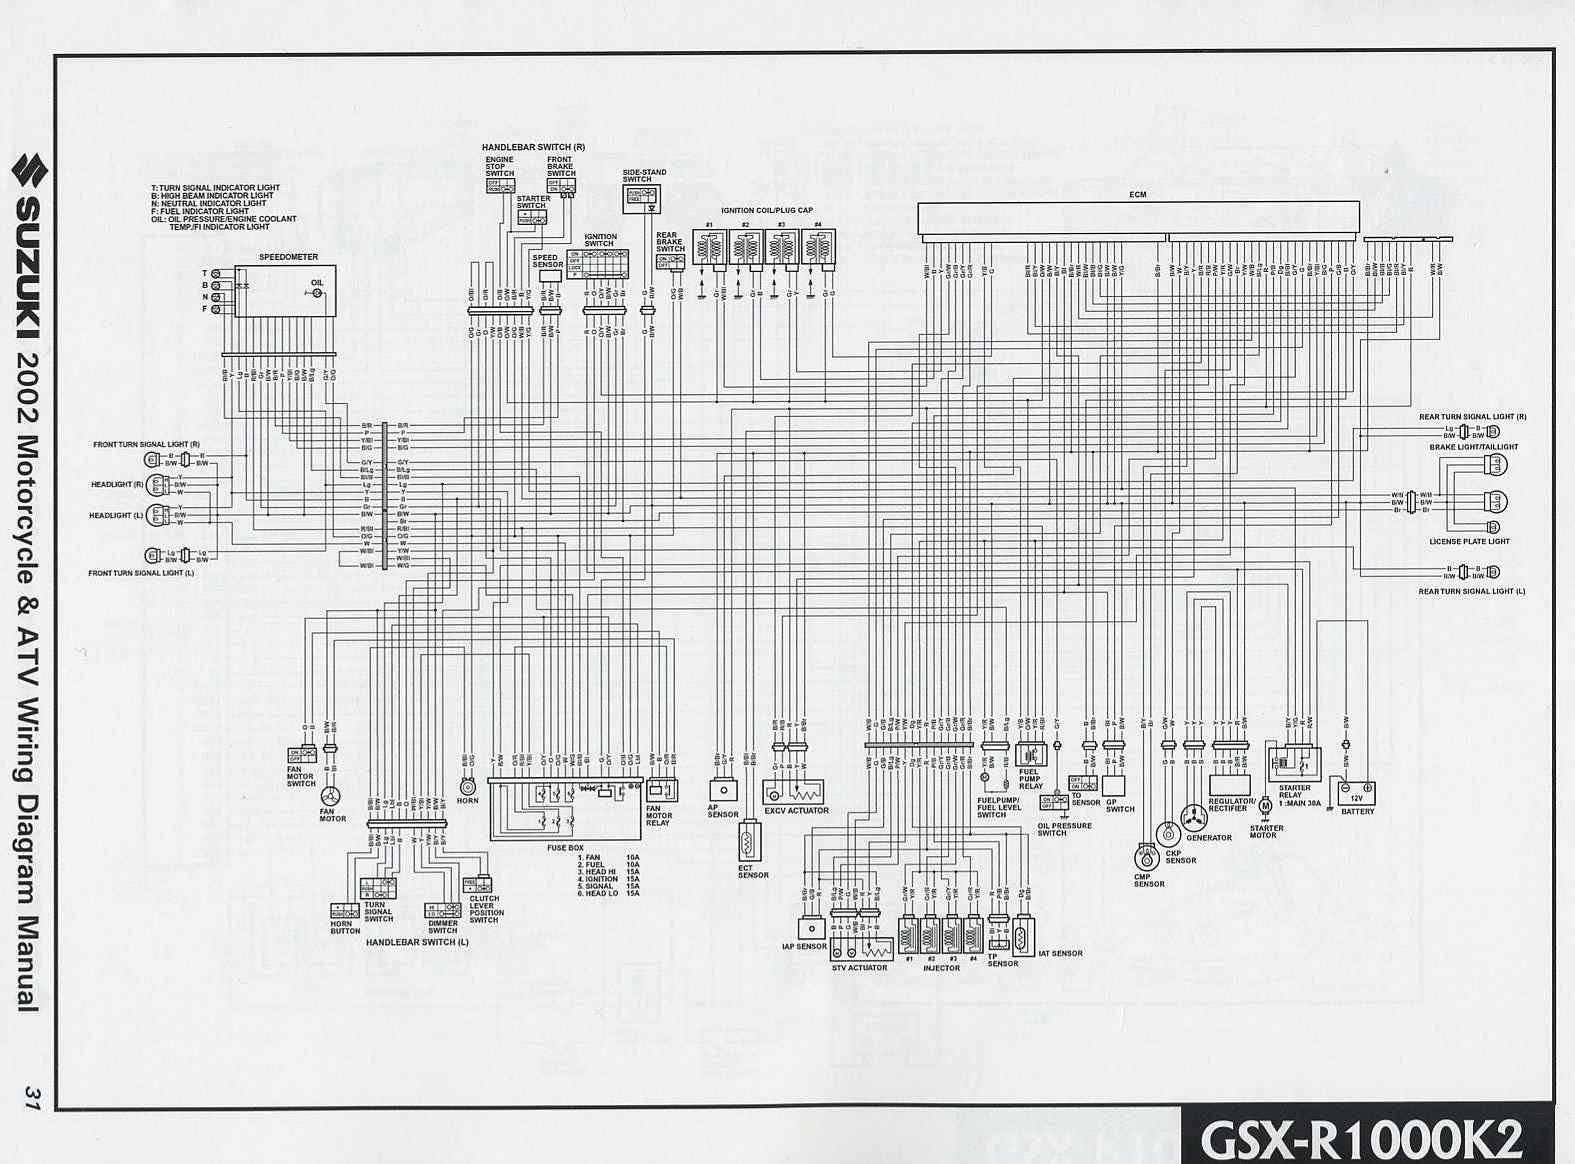 gsxr wiring diagram wiring diagrams online wiring diagram for 2007 gsxr 600 the wiring diagram